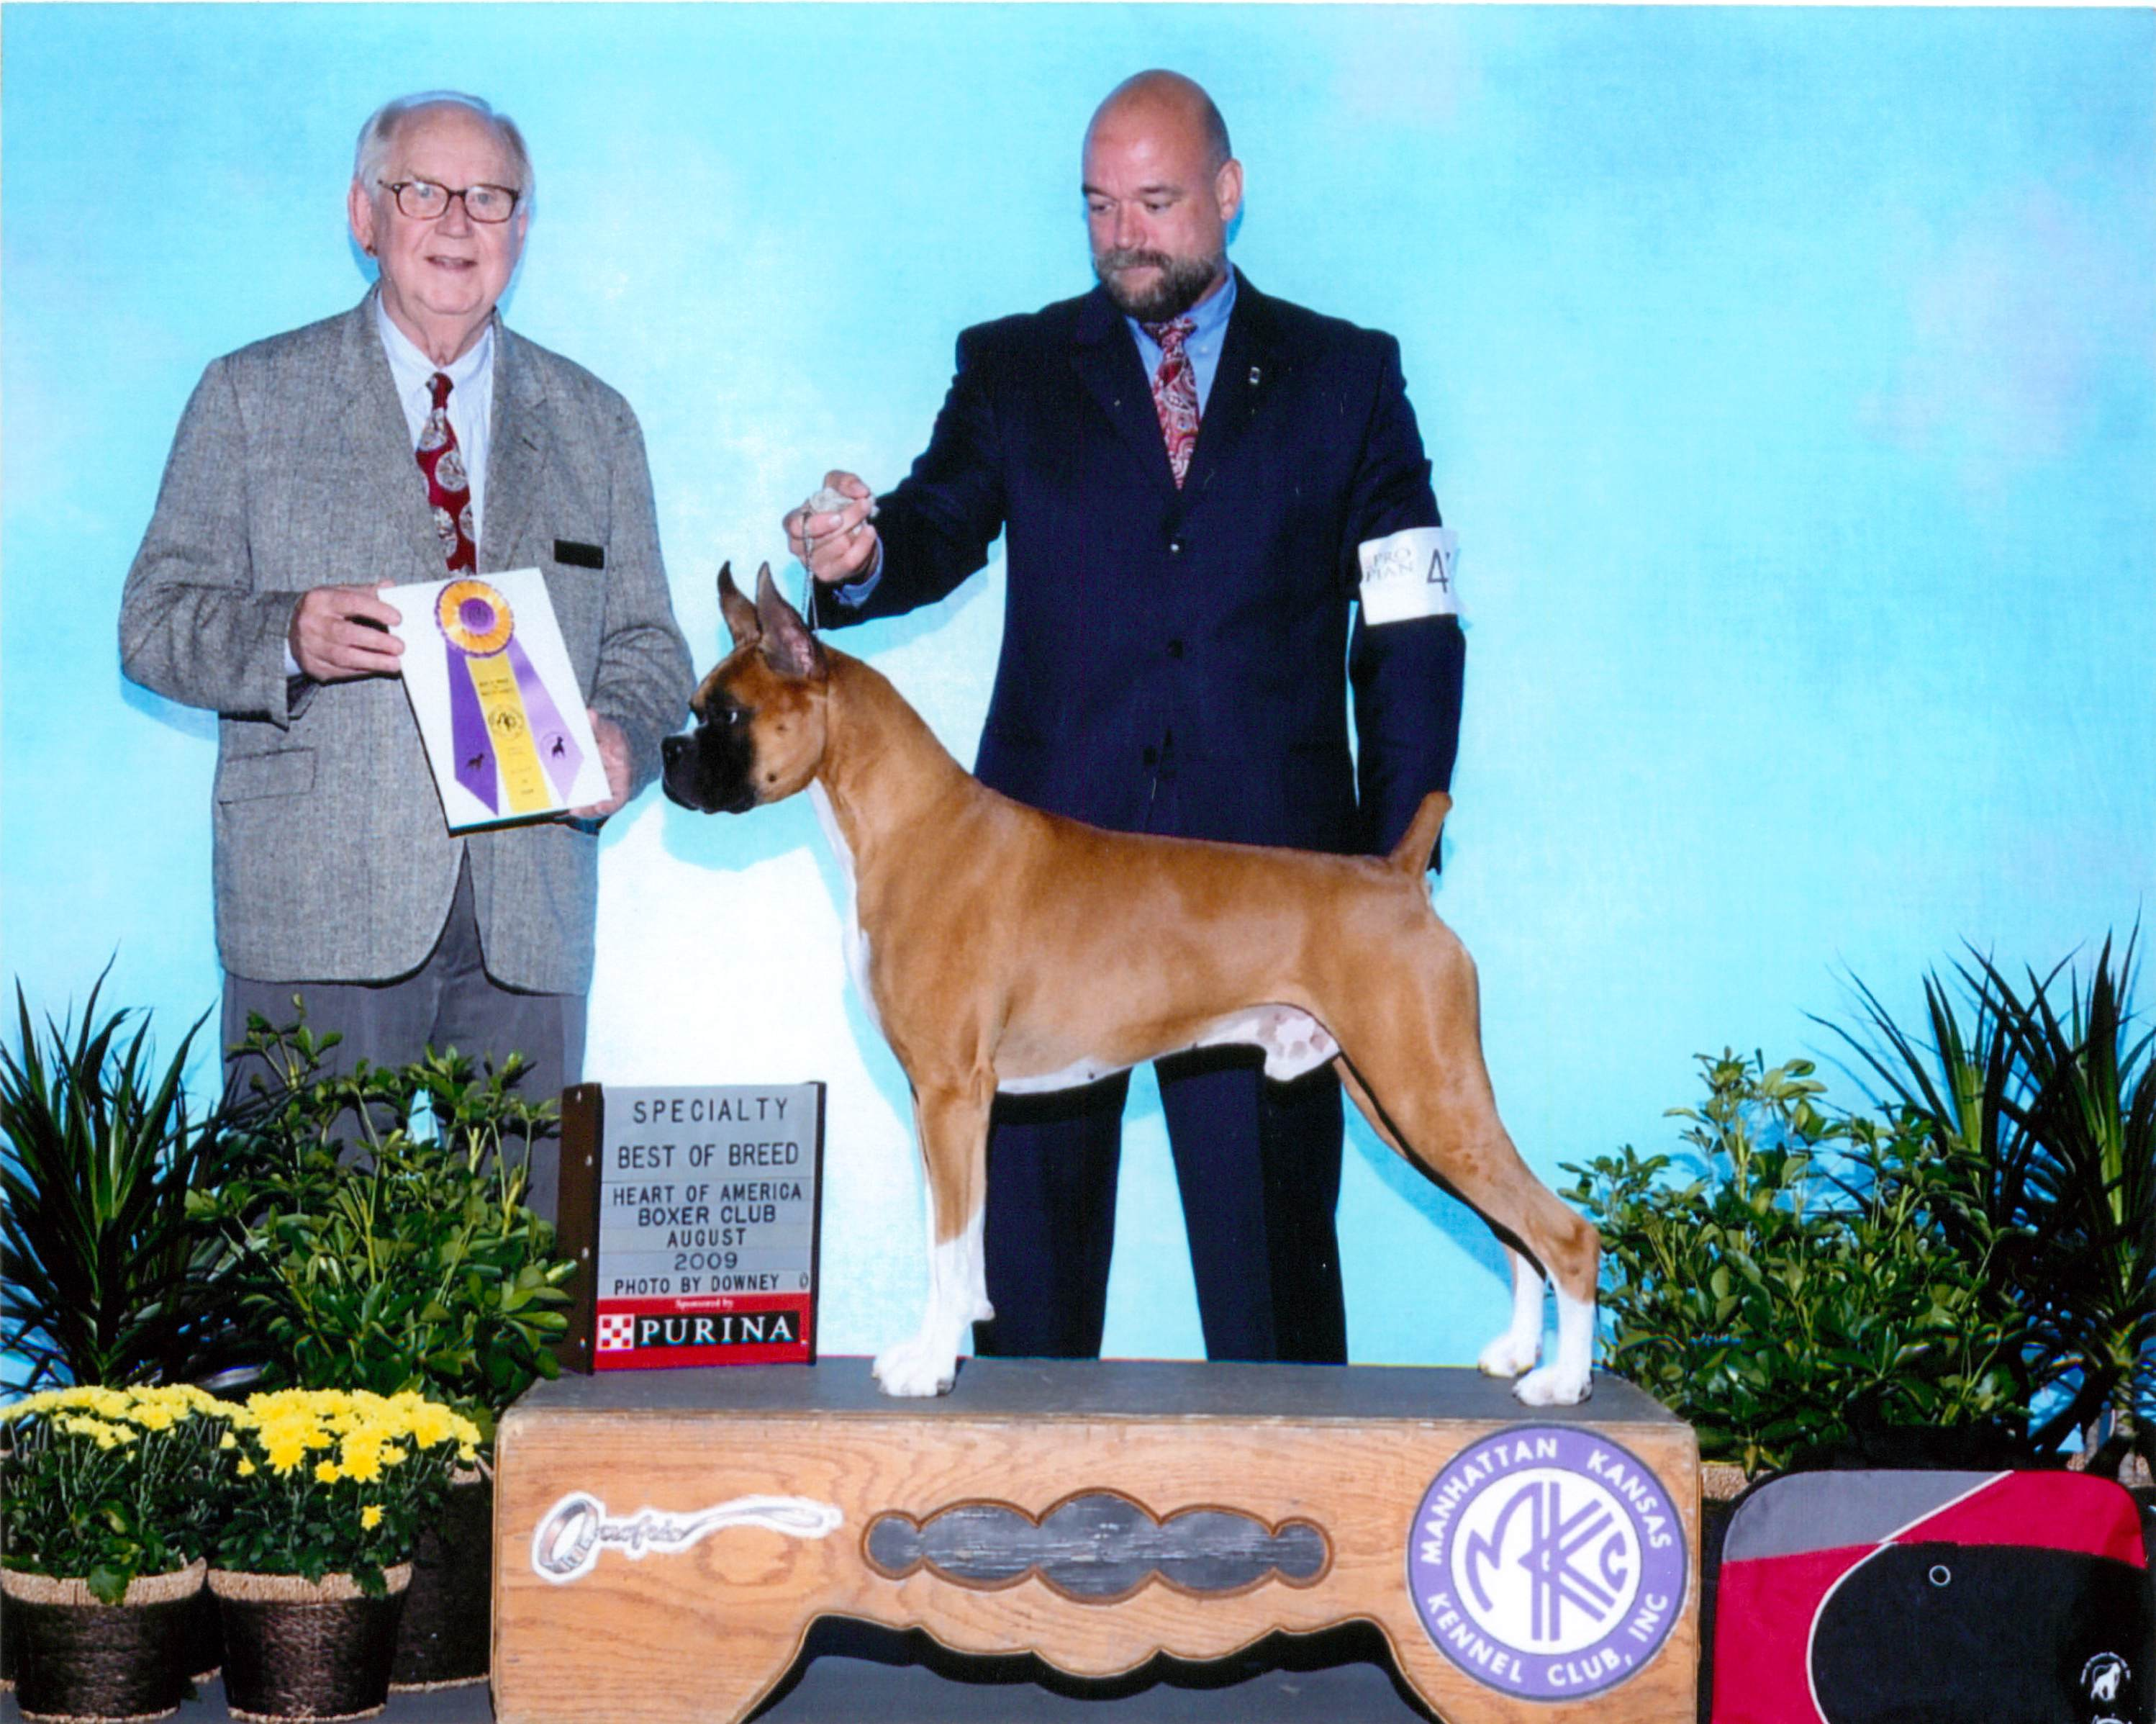 Best of Breed @ 2009 Specialty Show #1